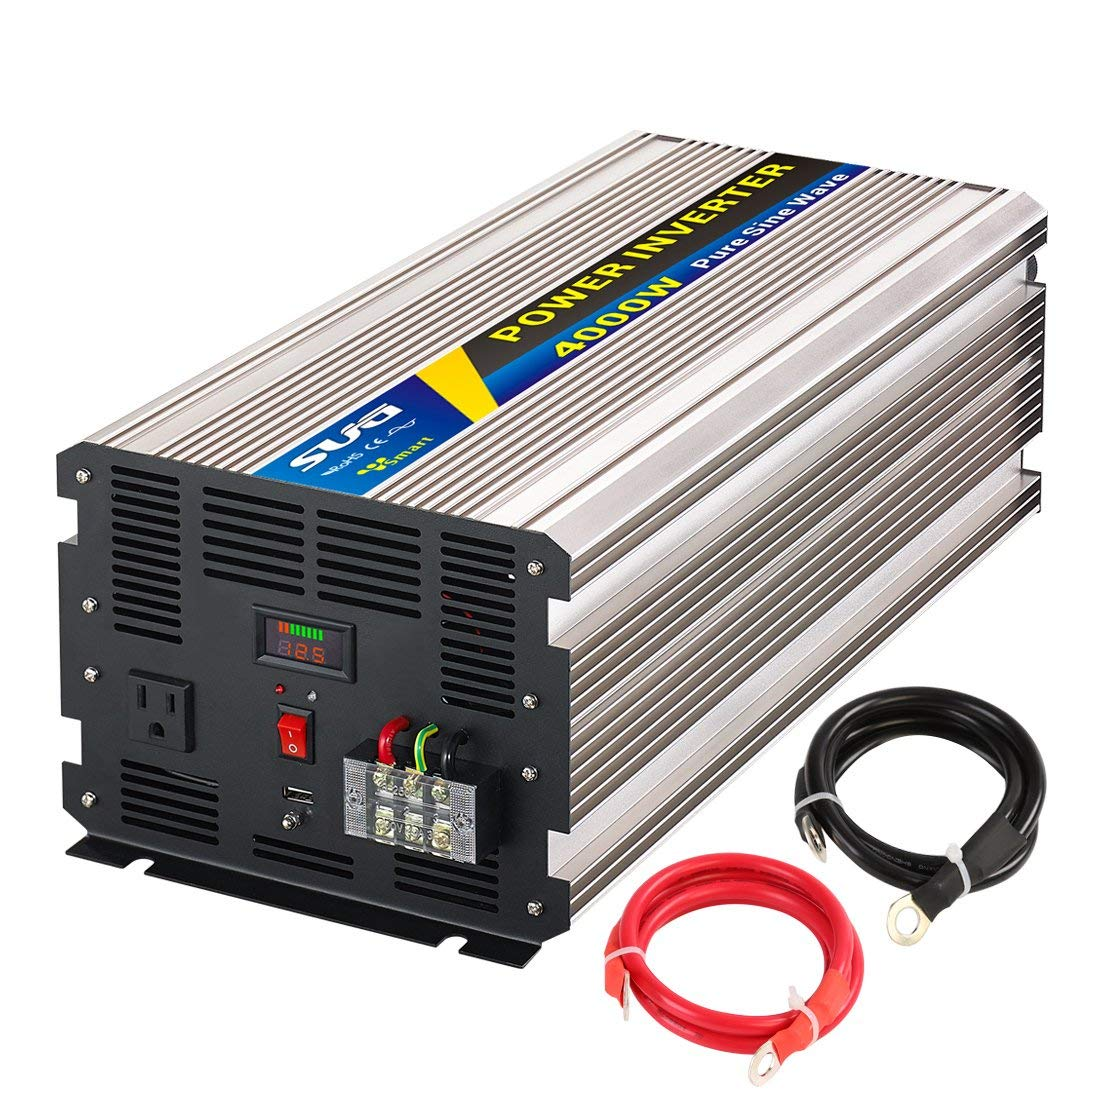 SUG 4000W (Peak 8000W) Power Inverter Pure Sine Wave DC 12V to AC 110V 120V Converter Back up Power Supply for Refrigerators, Microwaves, Coffee makers, Chainsaws,Air conditioner, Vacuums, Power tools